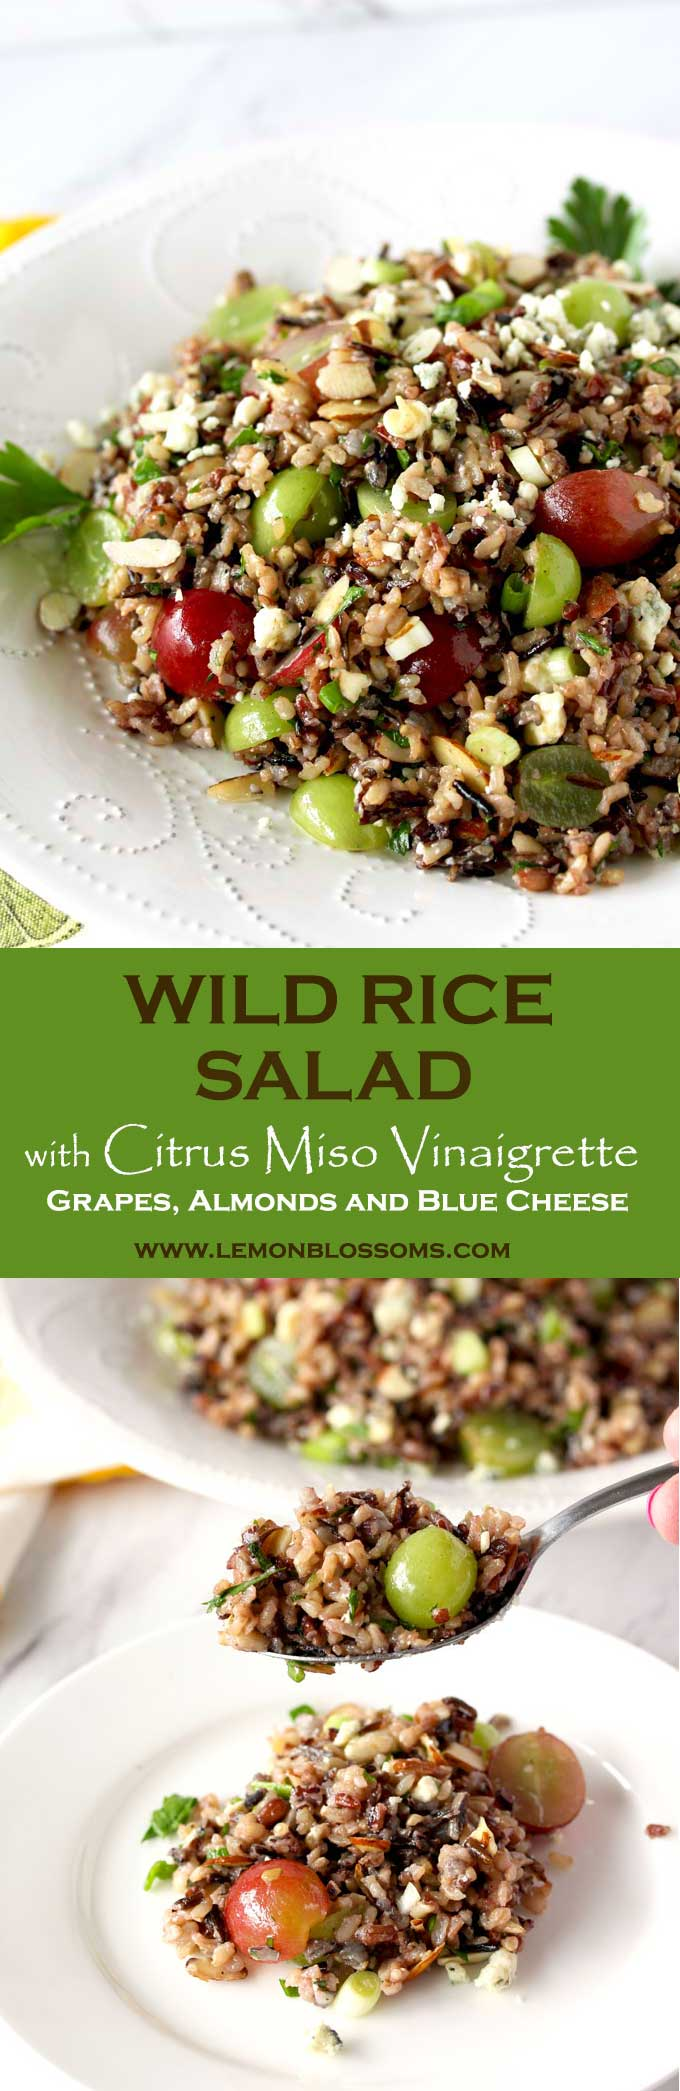 This Wild Rice Salad with grapes, almonds and blue cheese is tossed with the easiest, most flavorful Citrus Miso Vinaigrette. The Perfect served as a salad or side dish.